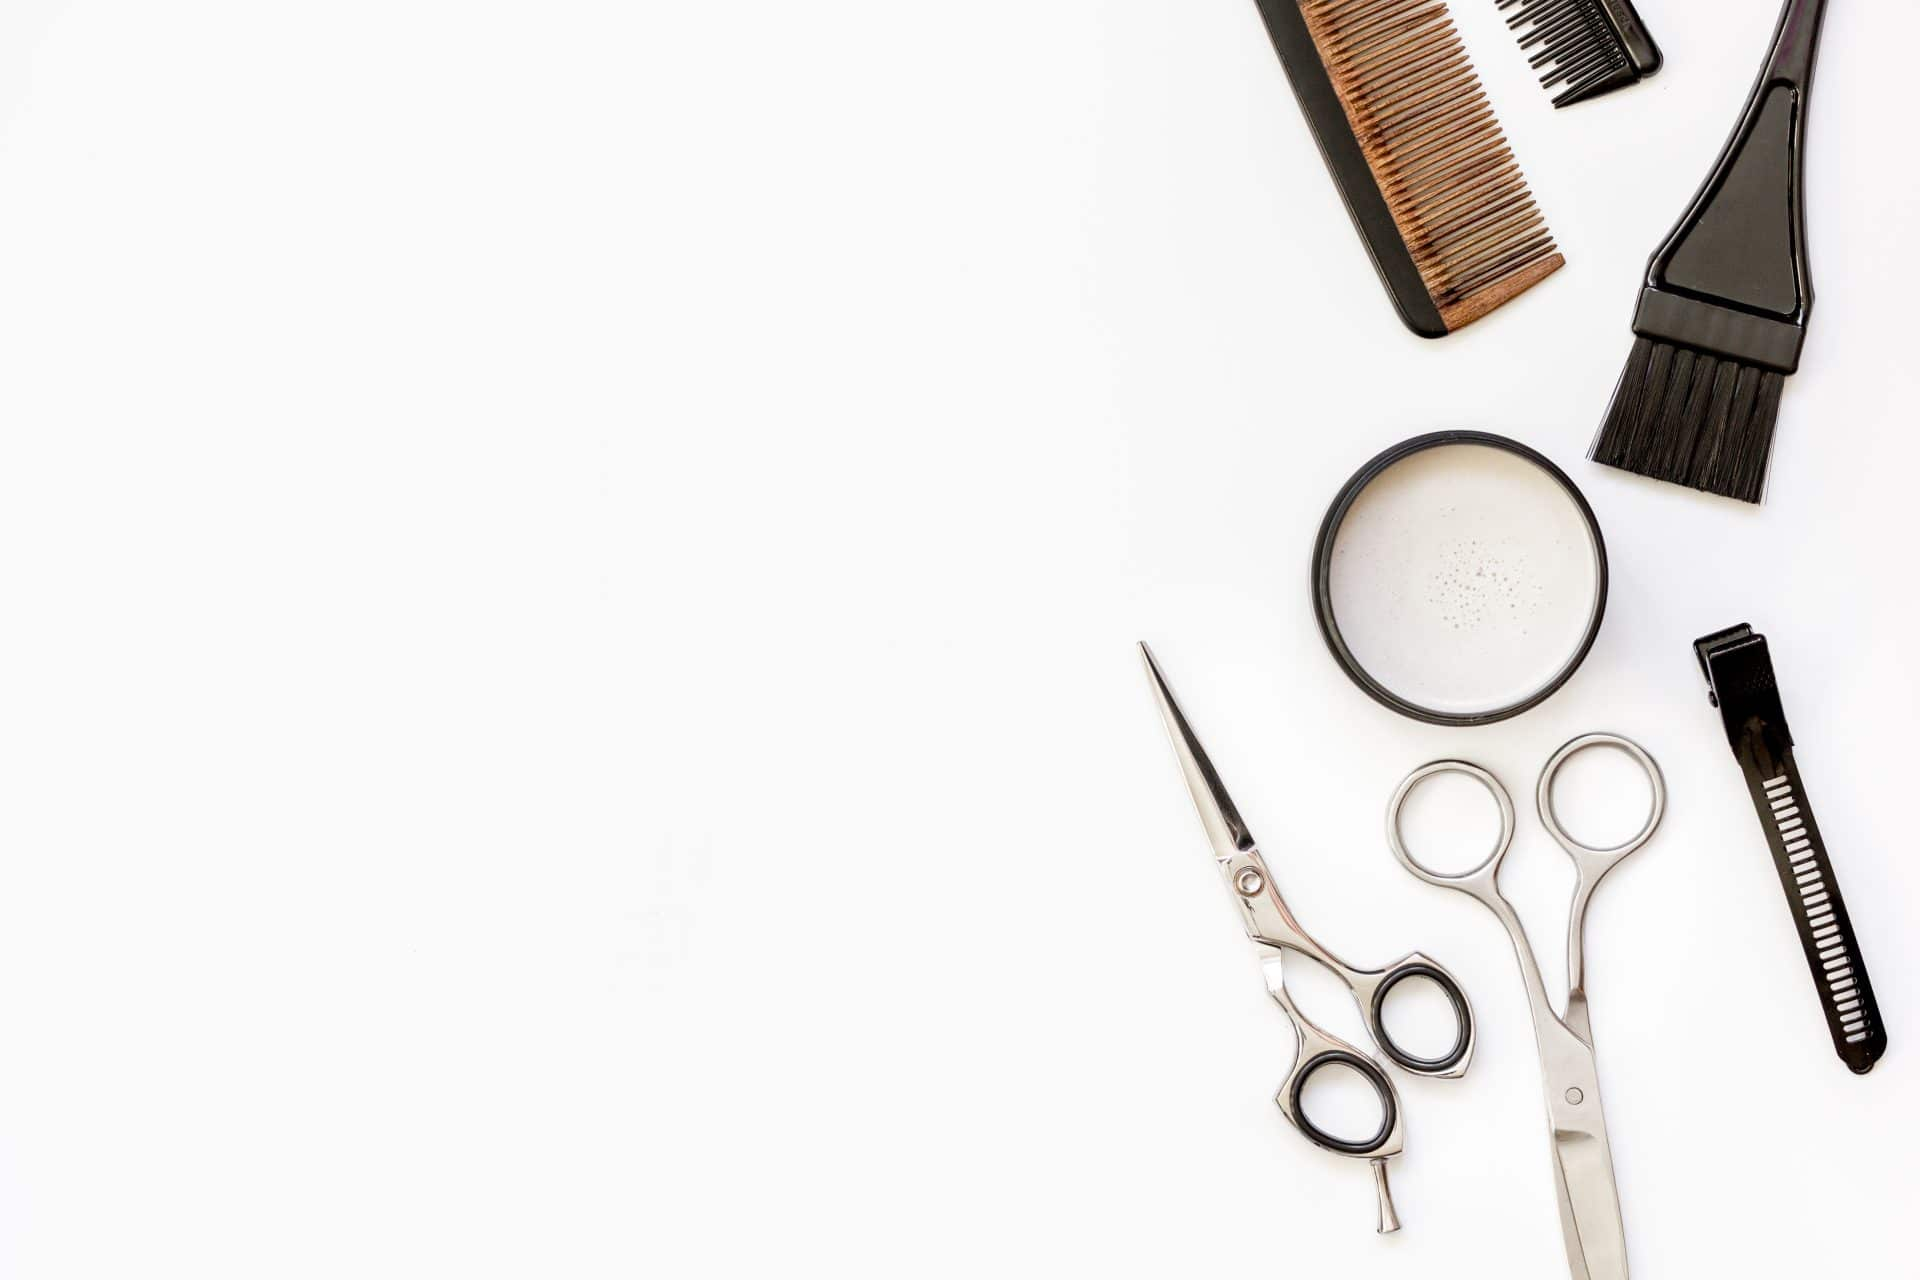 hairdresser-tools Schedule - Book Your Hair Appointment Online with Salon Mulberry